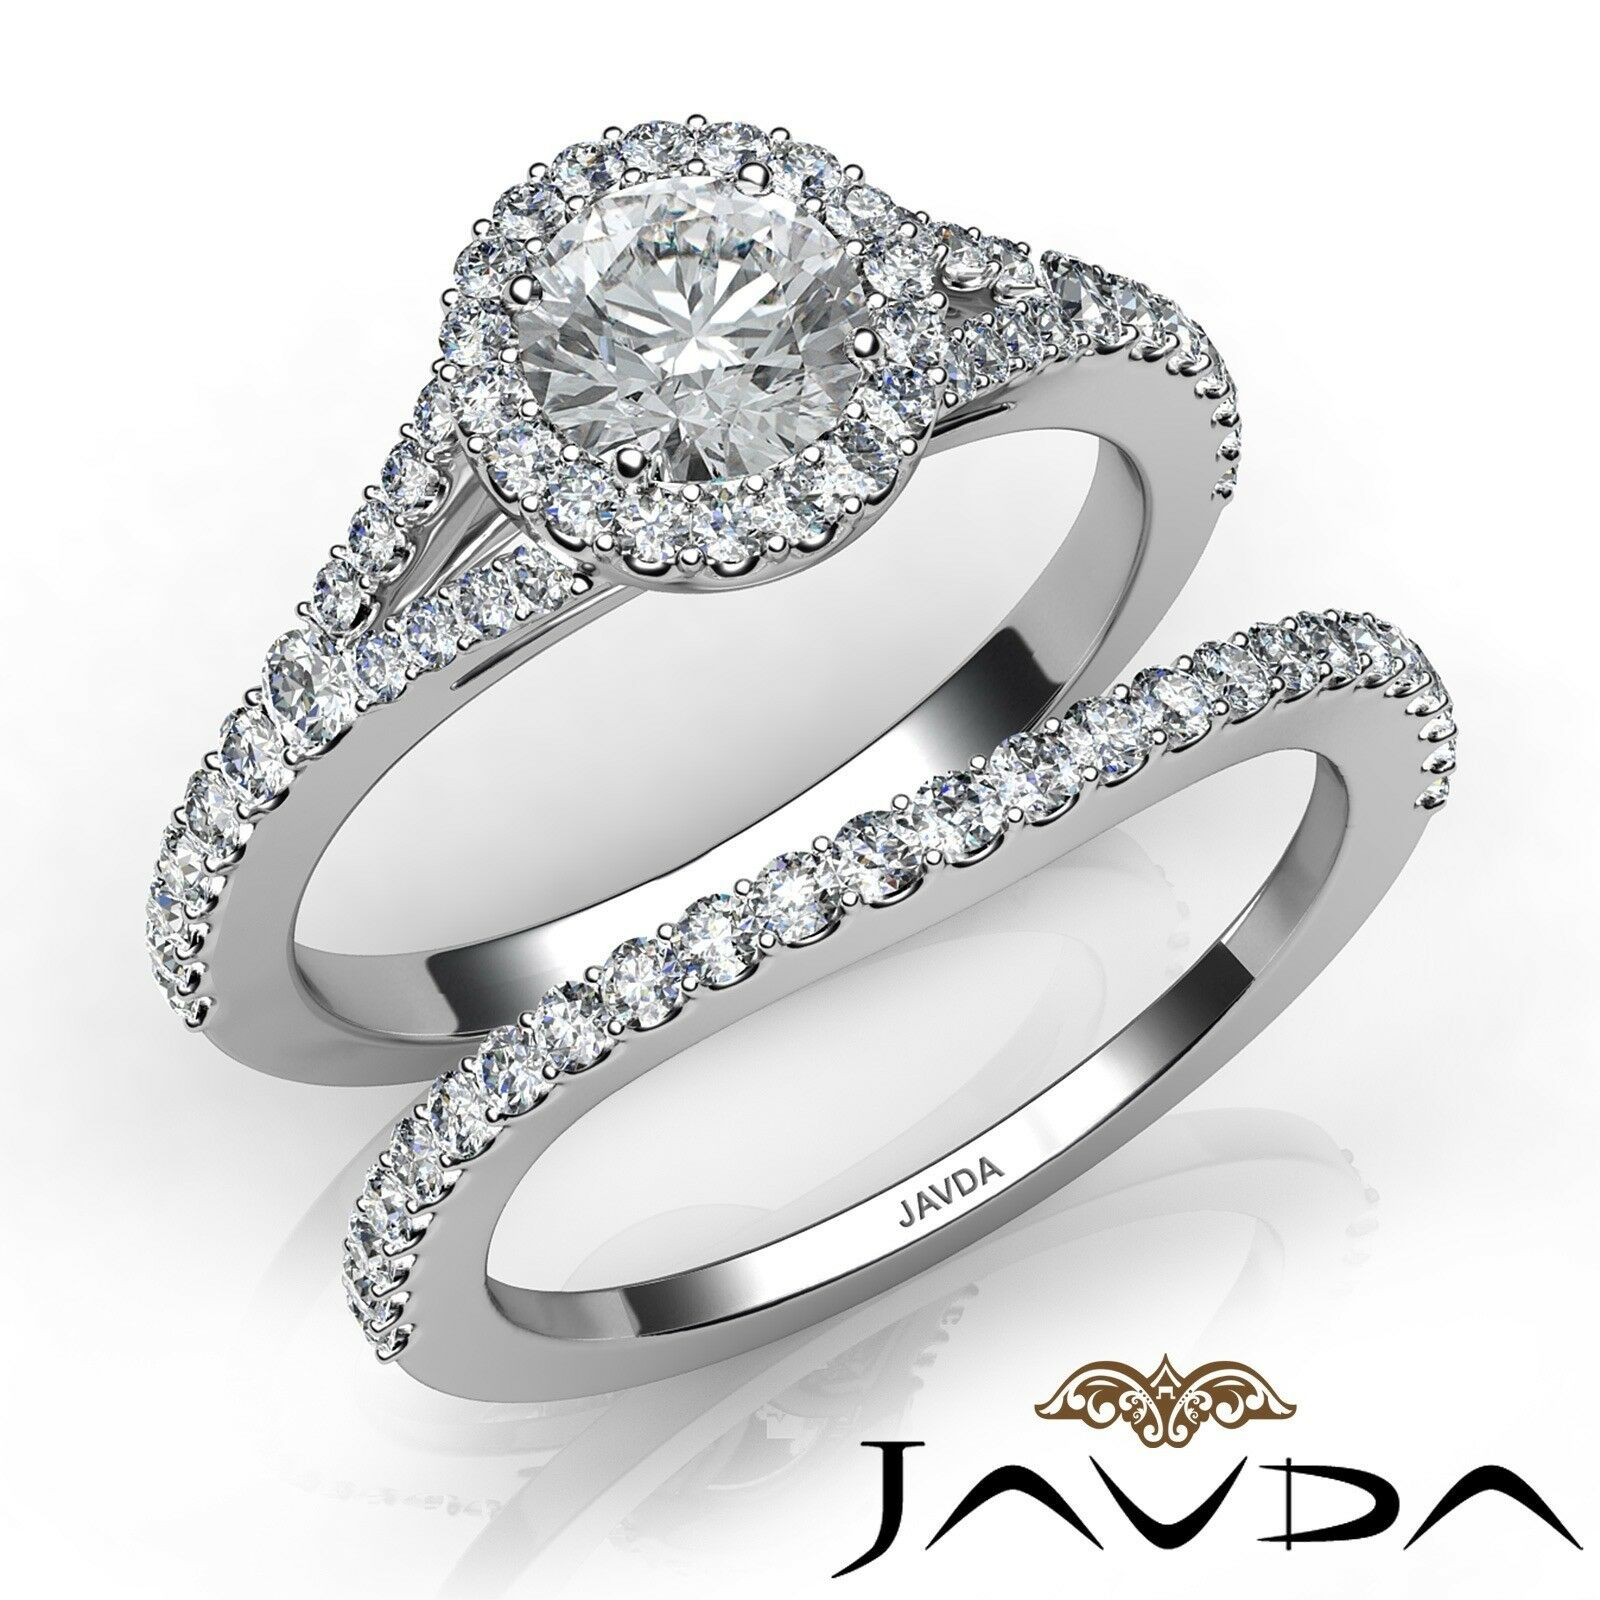 1.05ctw Floating Halo Bridal Set Round Diamond Engagement Ring GIA E-VVS1 W Gold